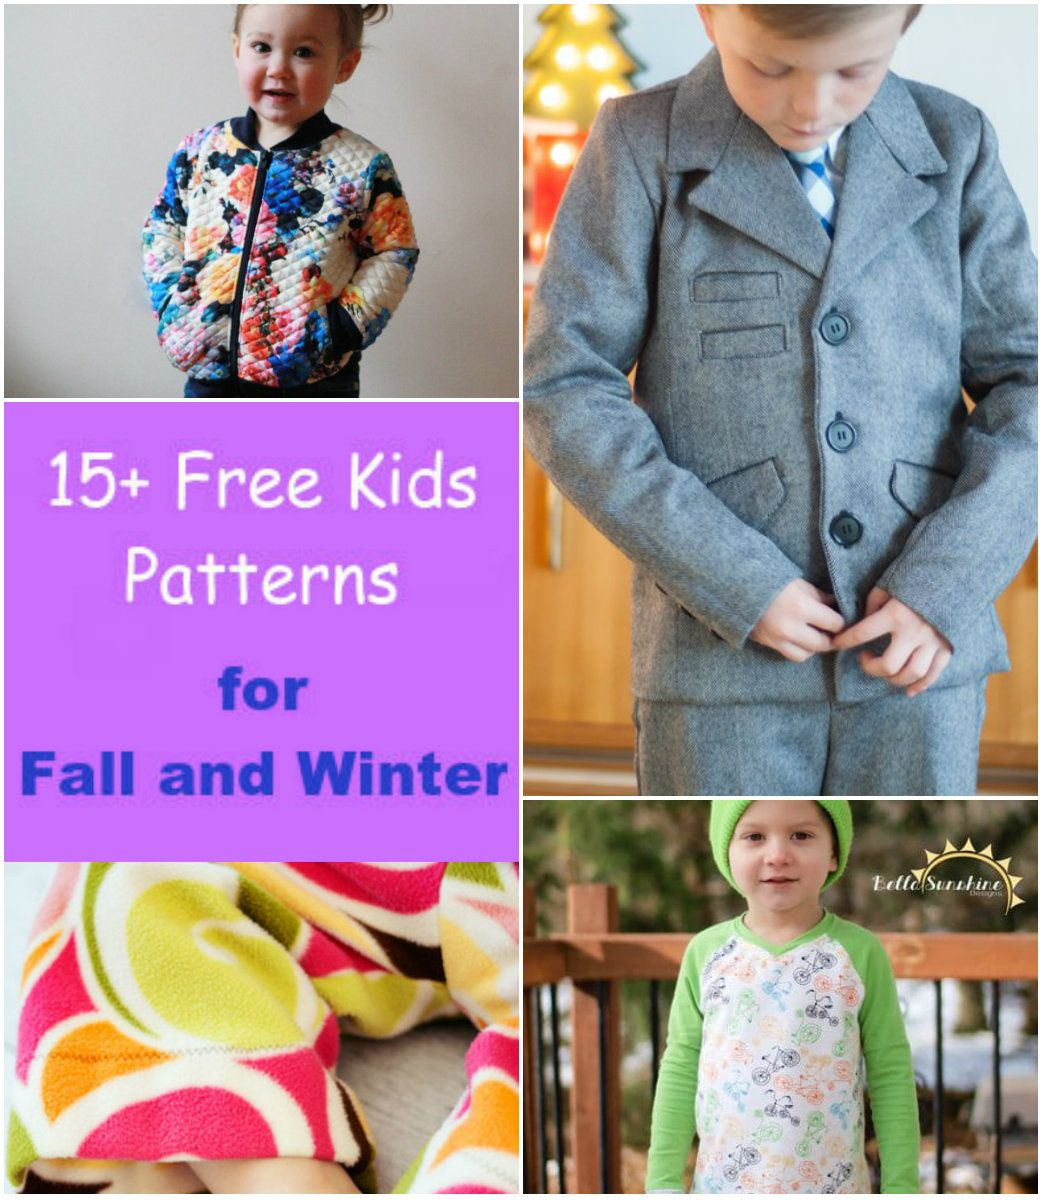 FREE PATTERN ALERT: 15+ Free Kids Patterns for Fall and Winter